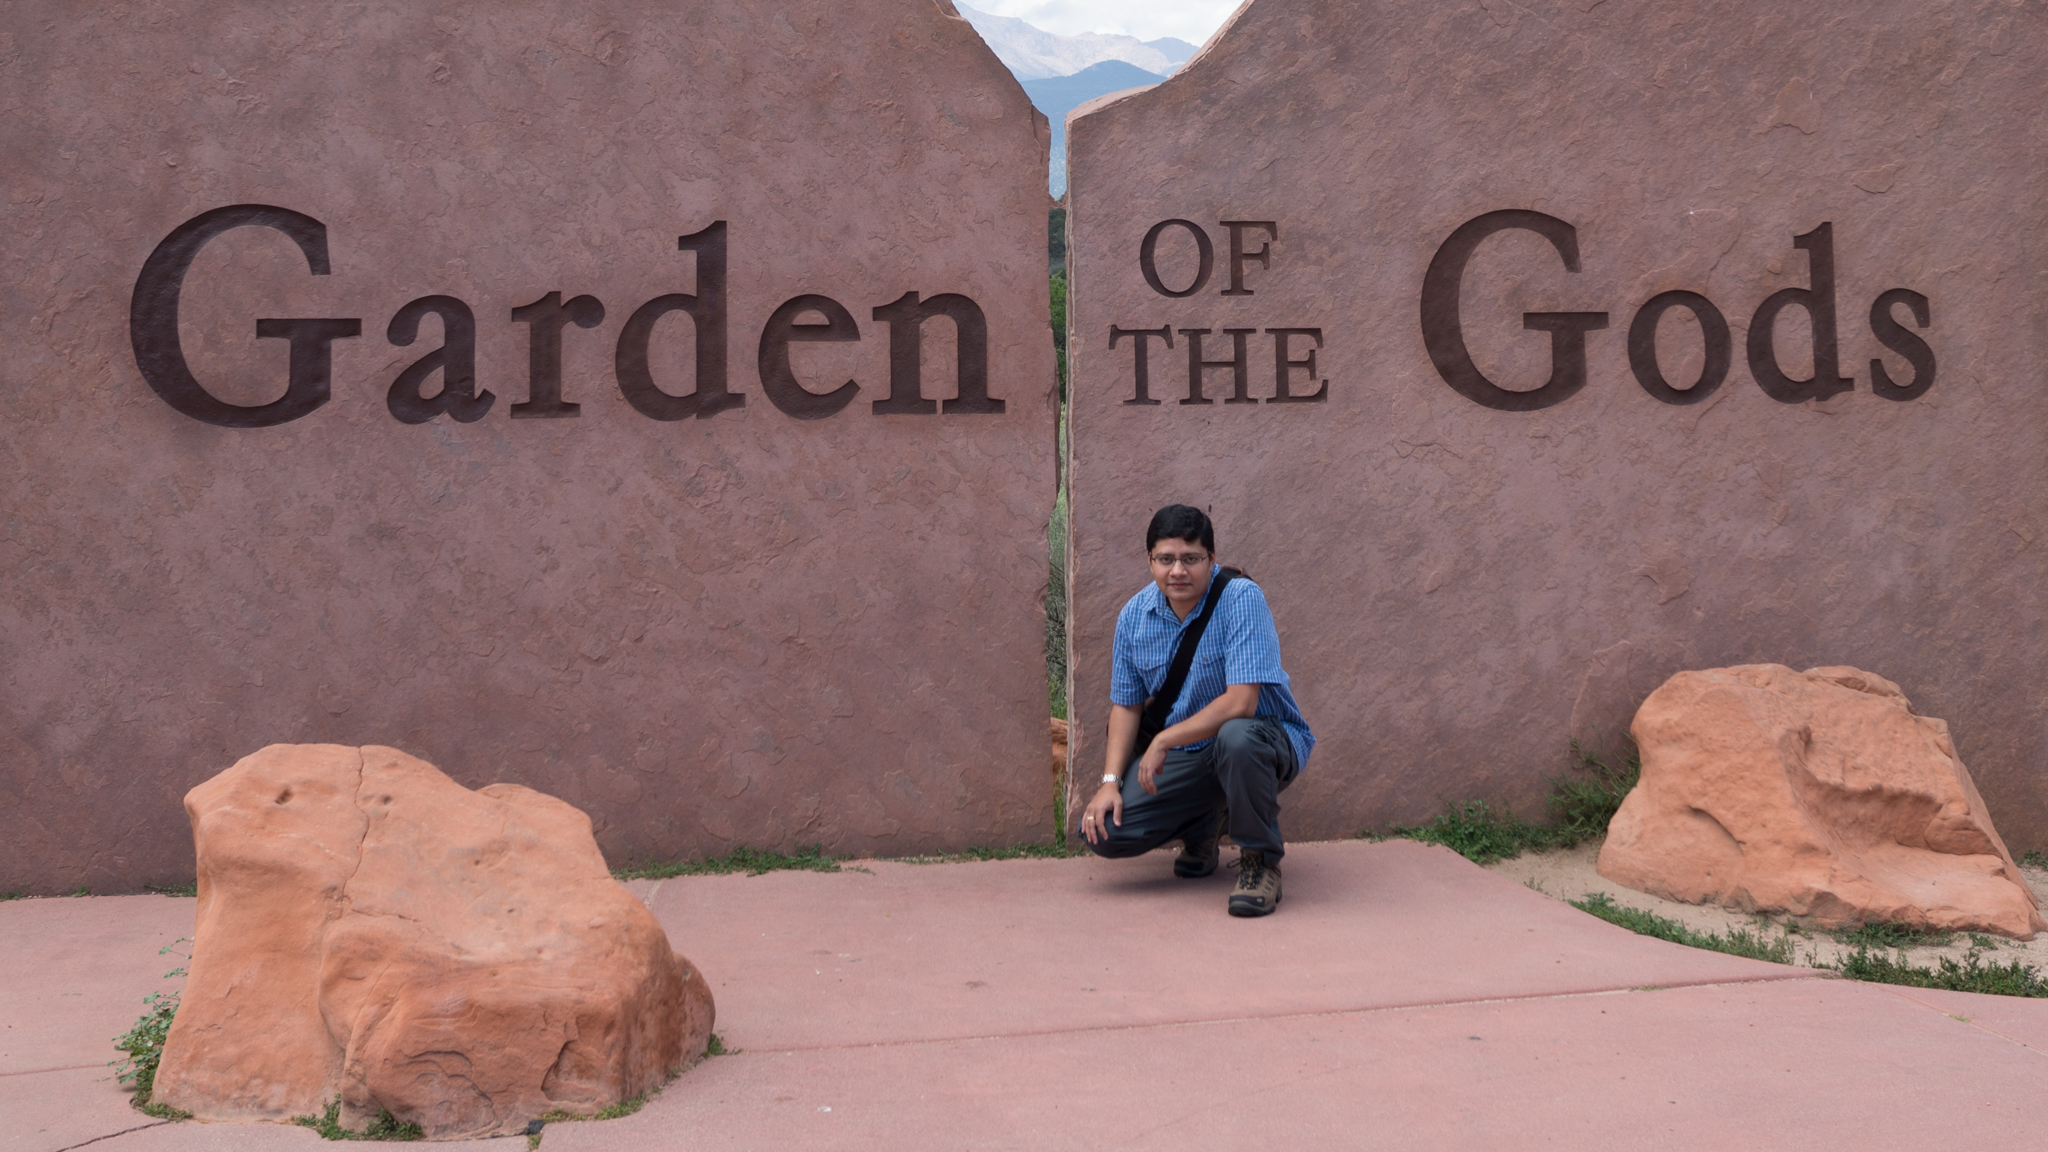 Anirban @ Garden of the Gods